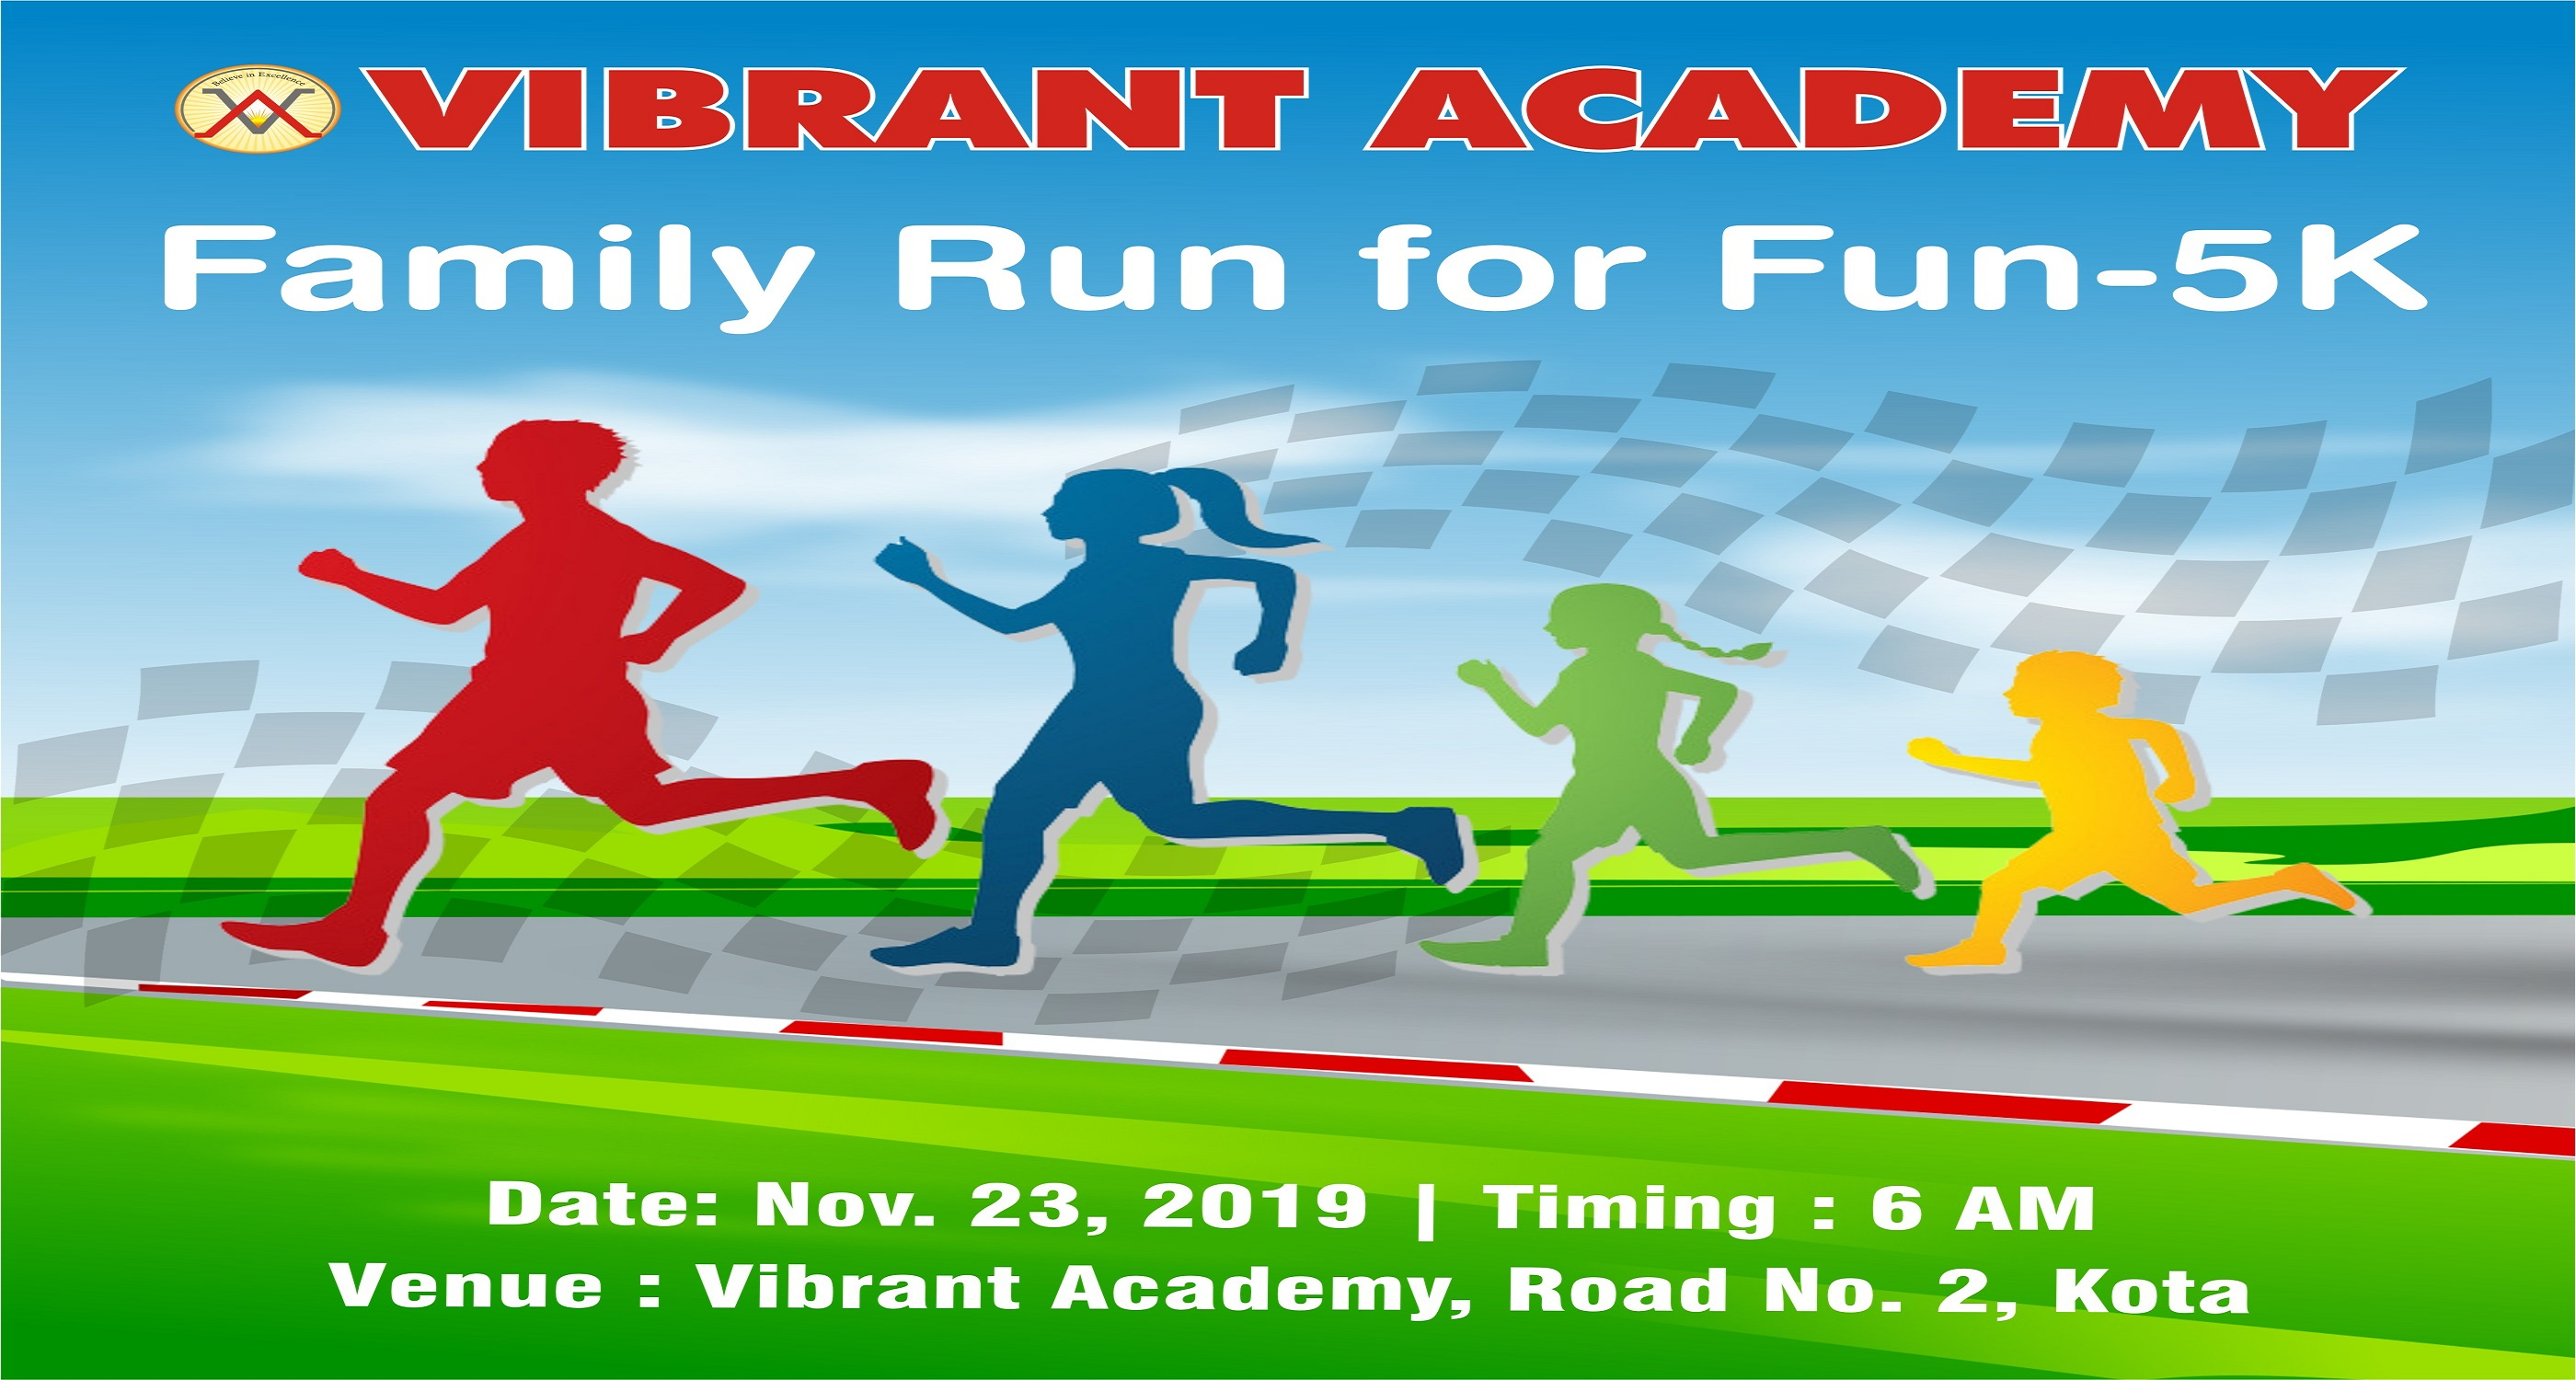 Vibrant Academy Organize Family Run For Fun 5k